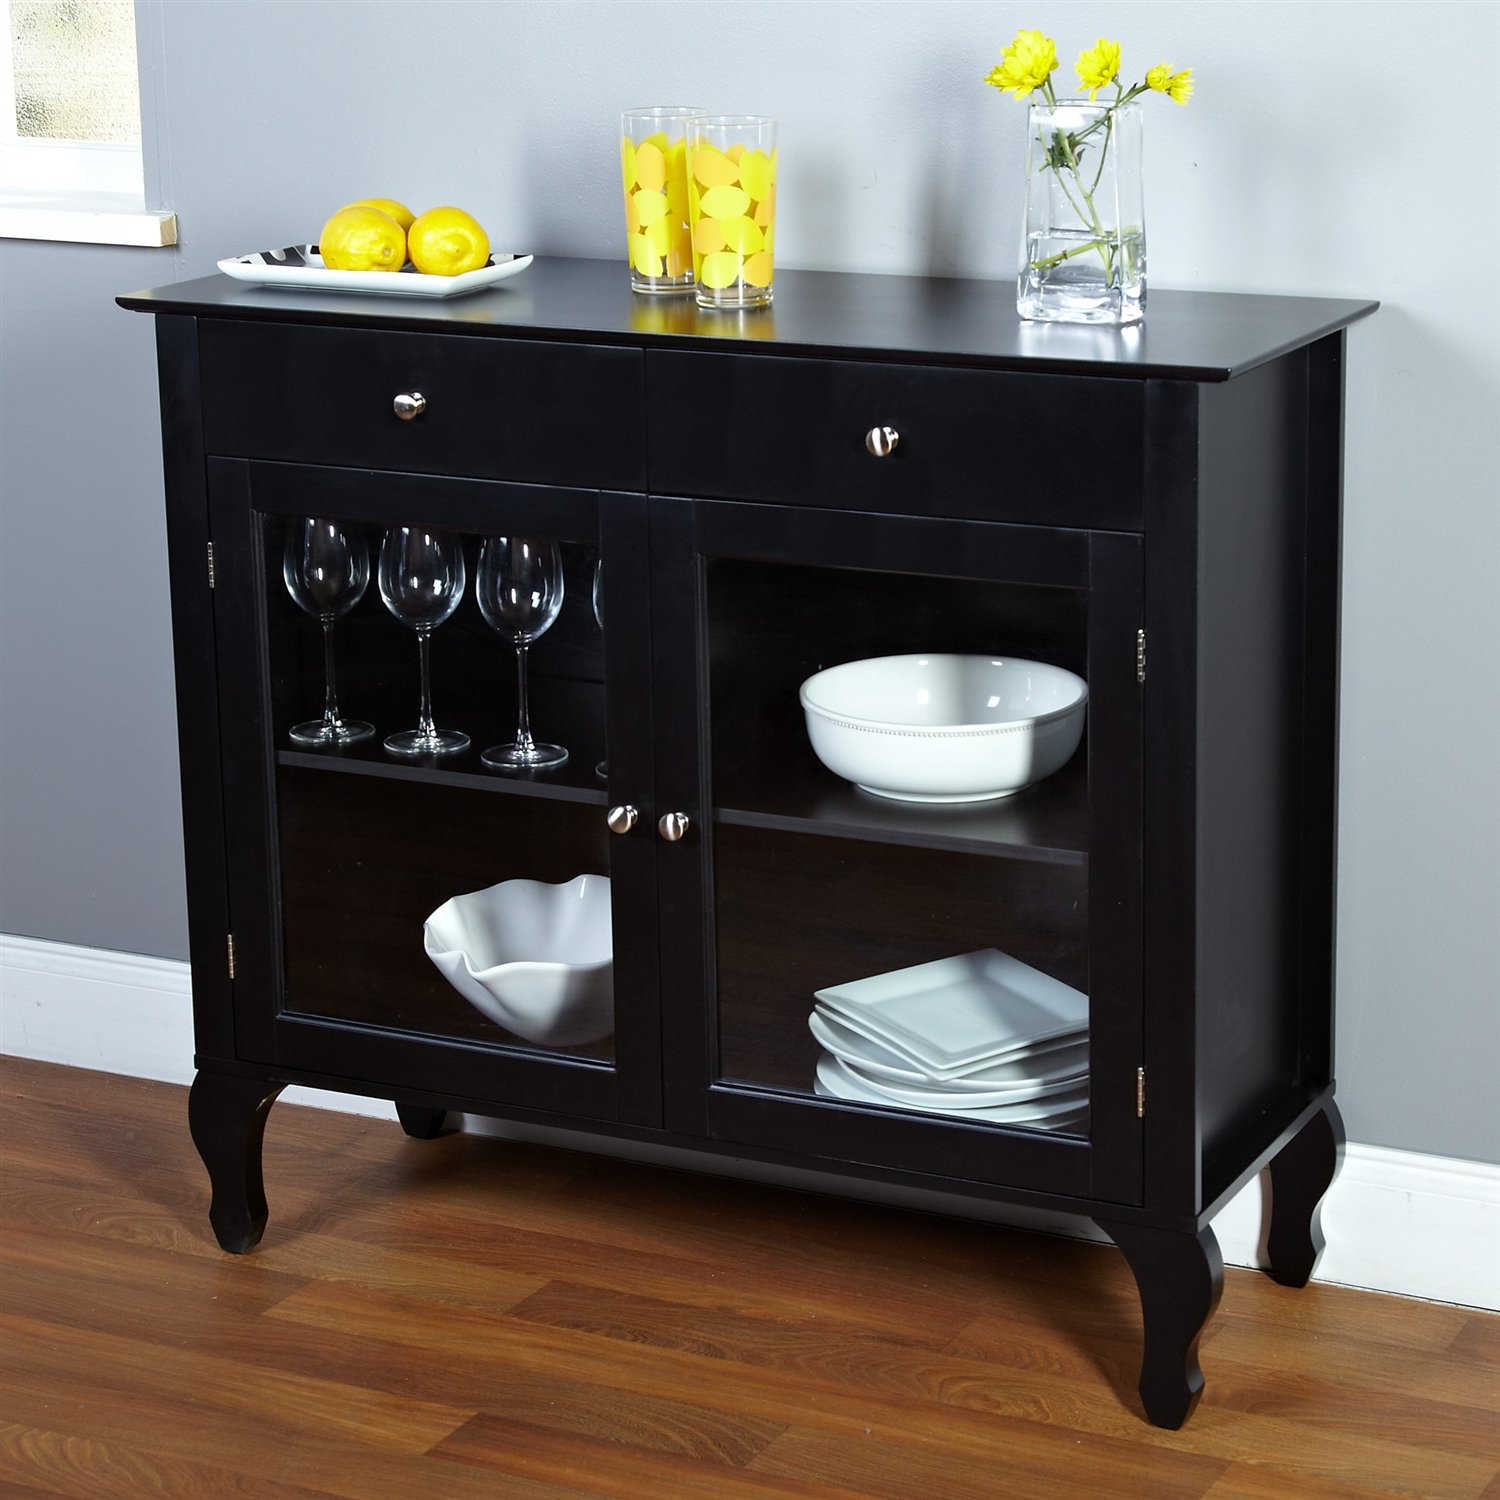 Black Dining Room Buffet Sideboard Server Cabinet With Gl Doors